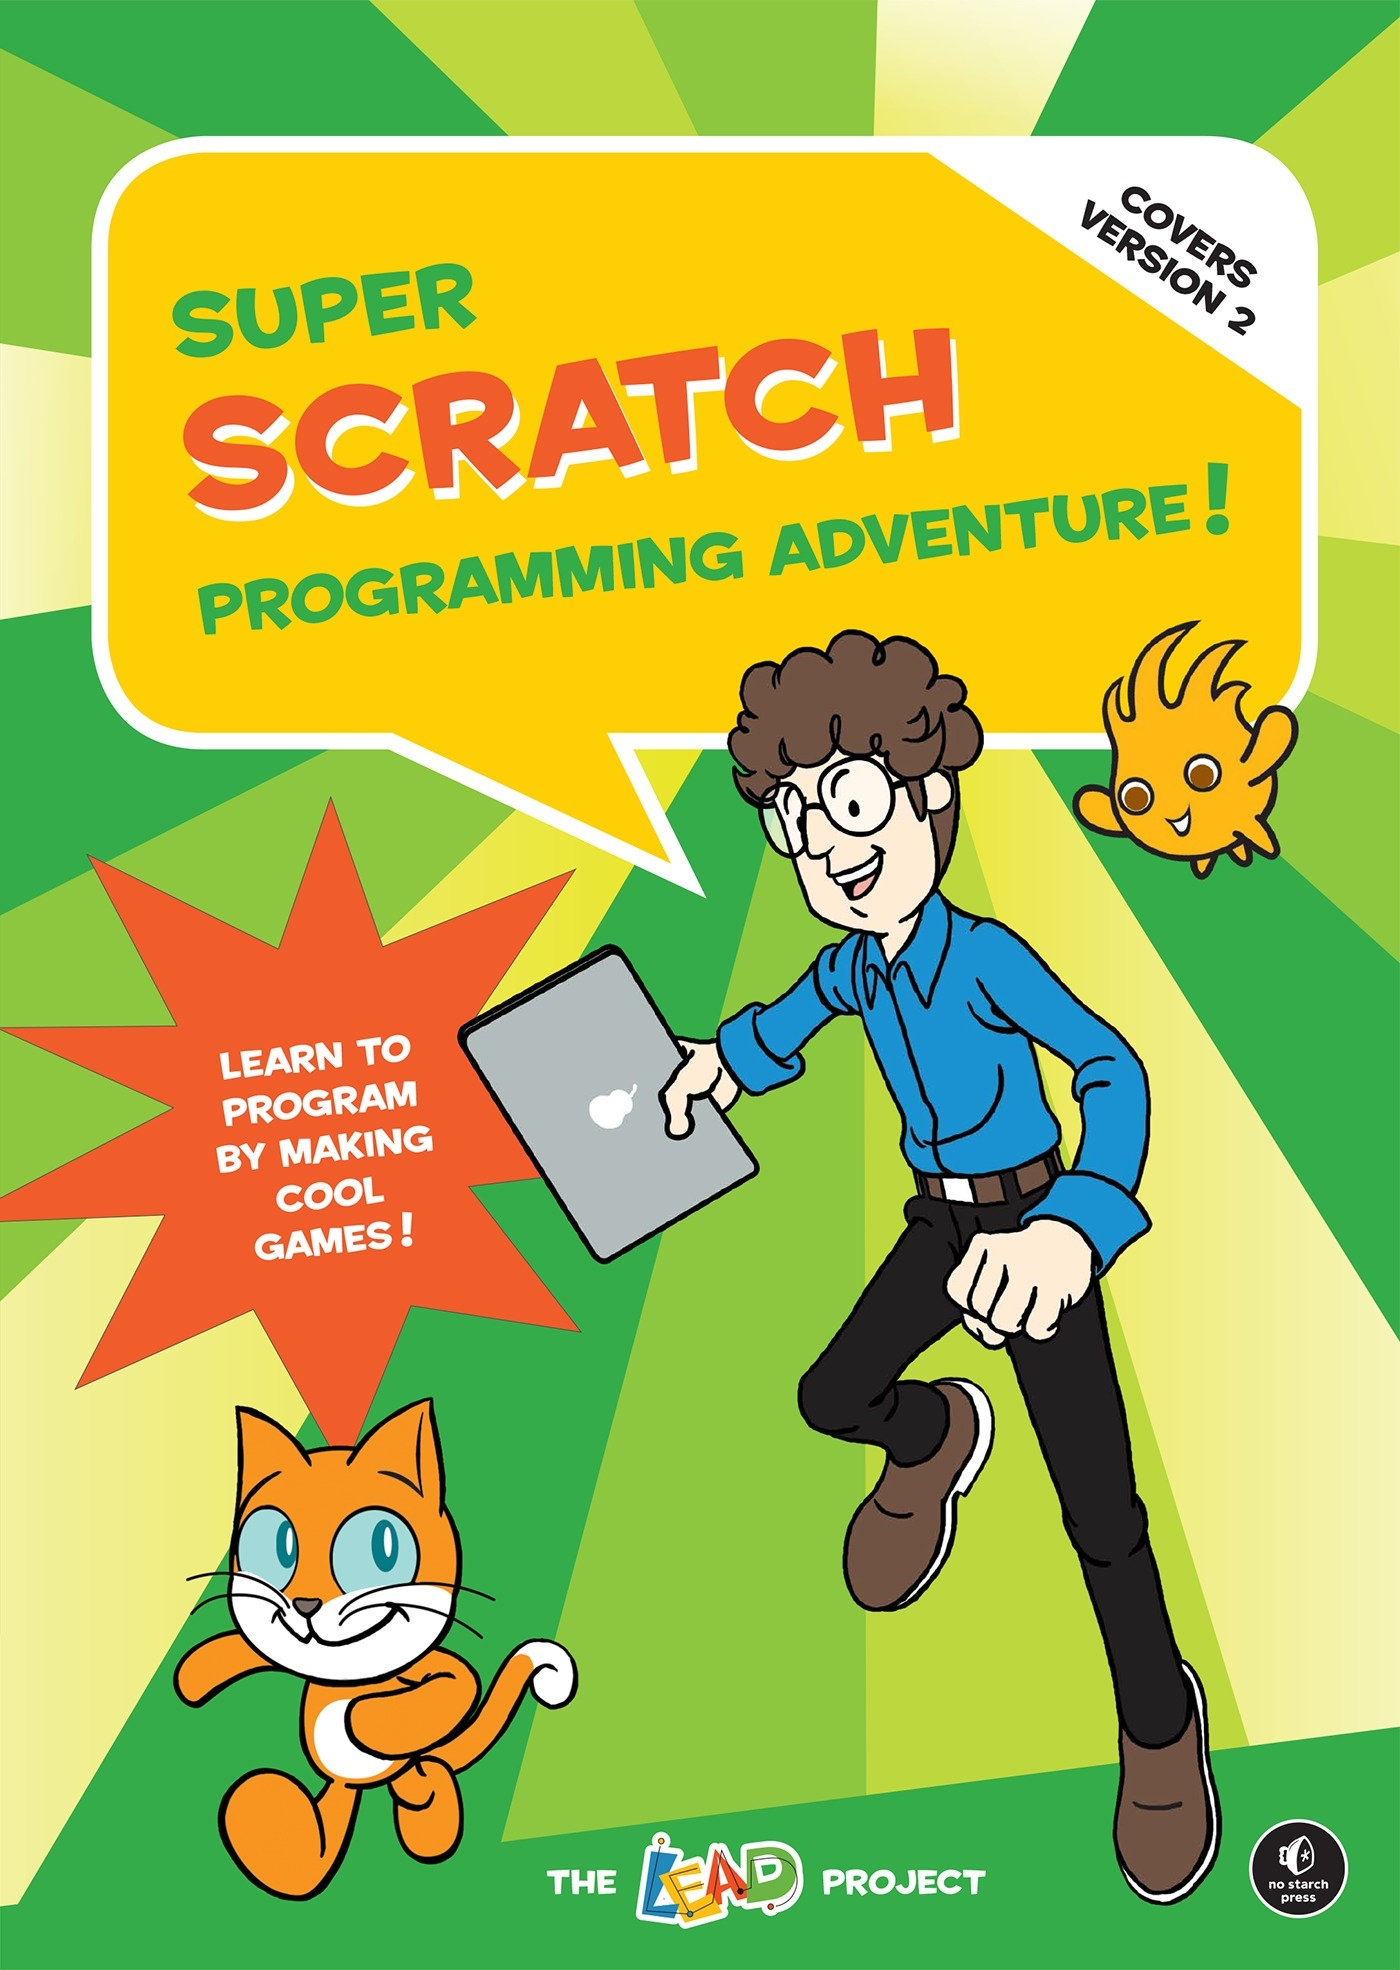 Super Scratch Programming Adventure!: Learn to Program by Making Cool Games (Covers Scratch 2.0) by The Lead Project, ISBN: 9781593275310